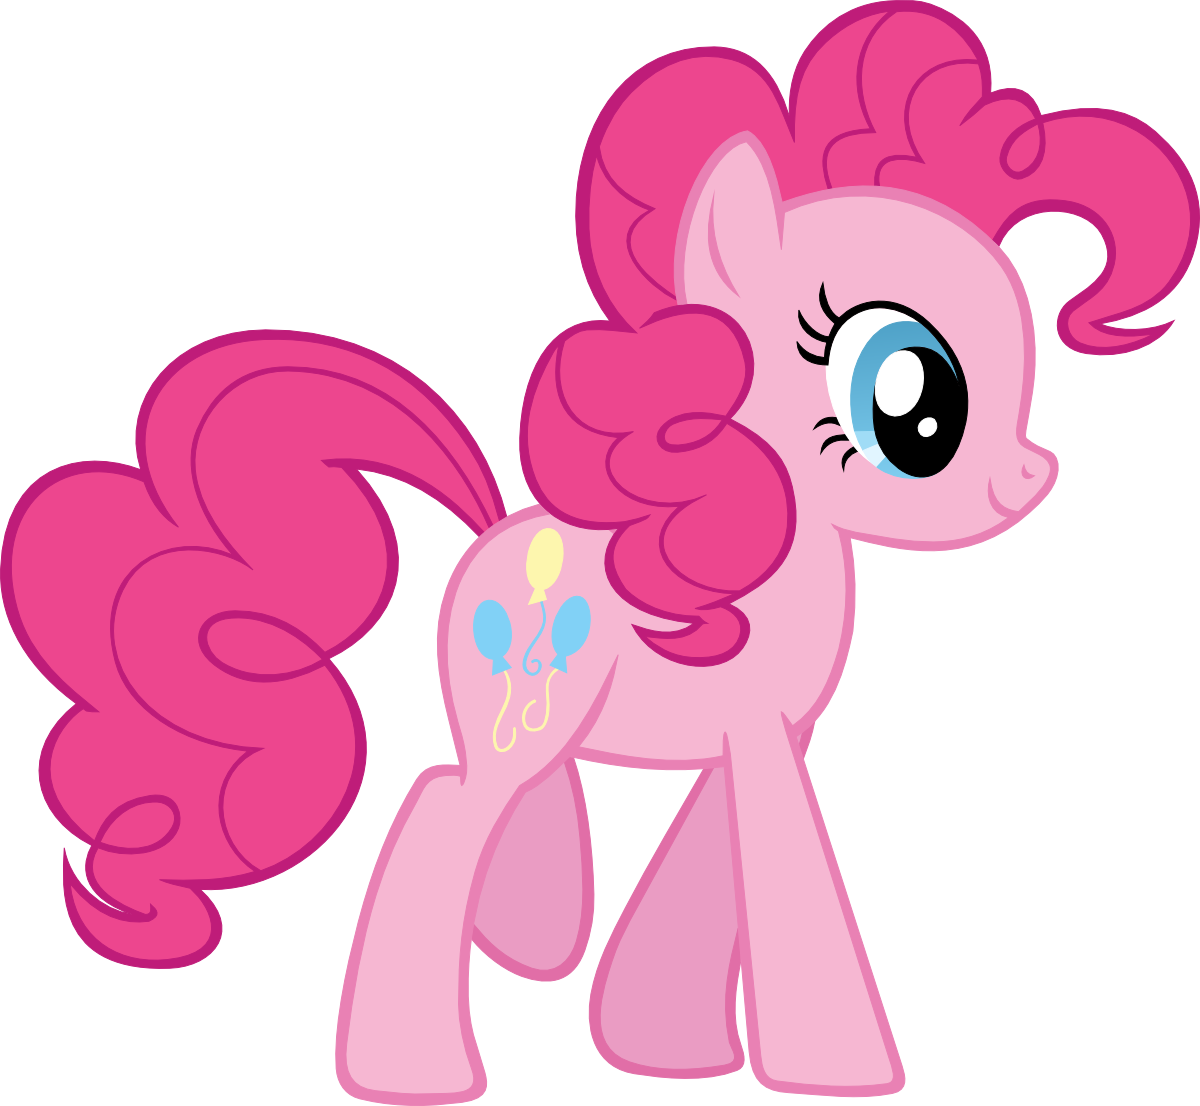 Pin by MLP on Pinkie Pie in 2019 | My little pony ...